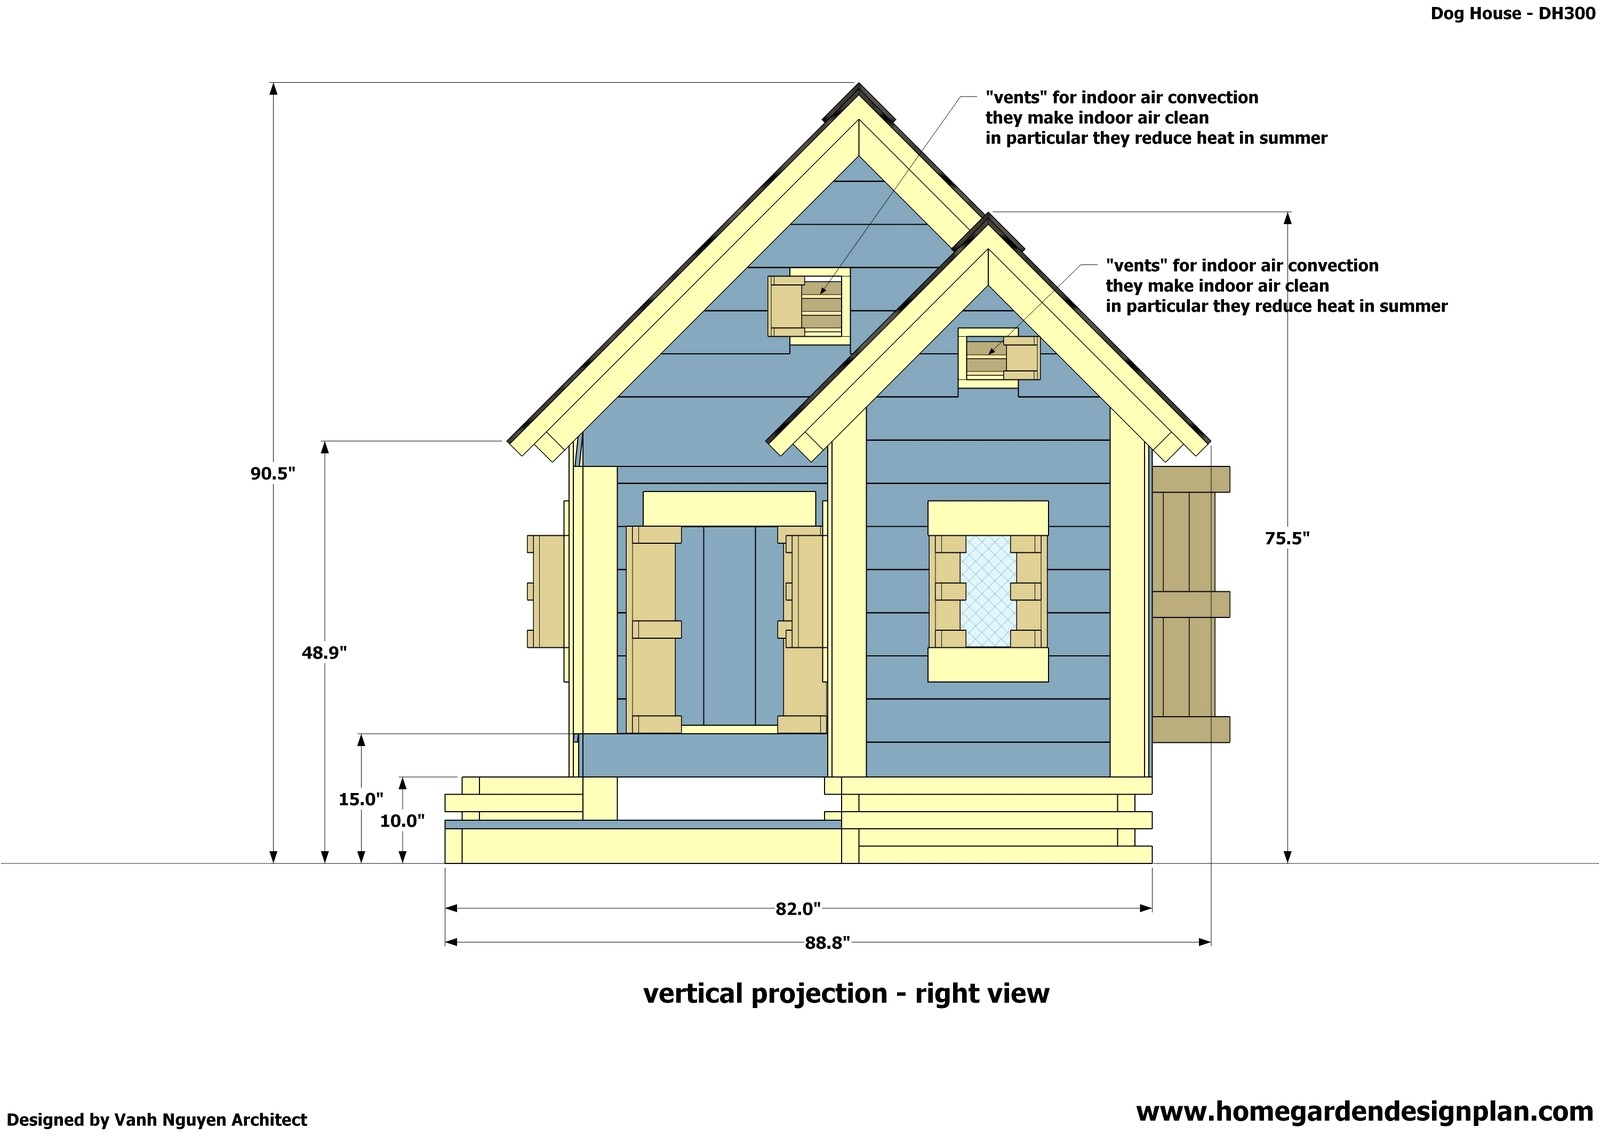 dog house dh300 perfect plans for 25